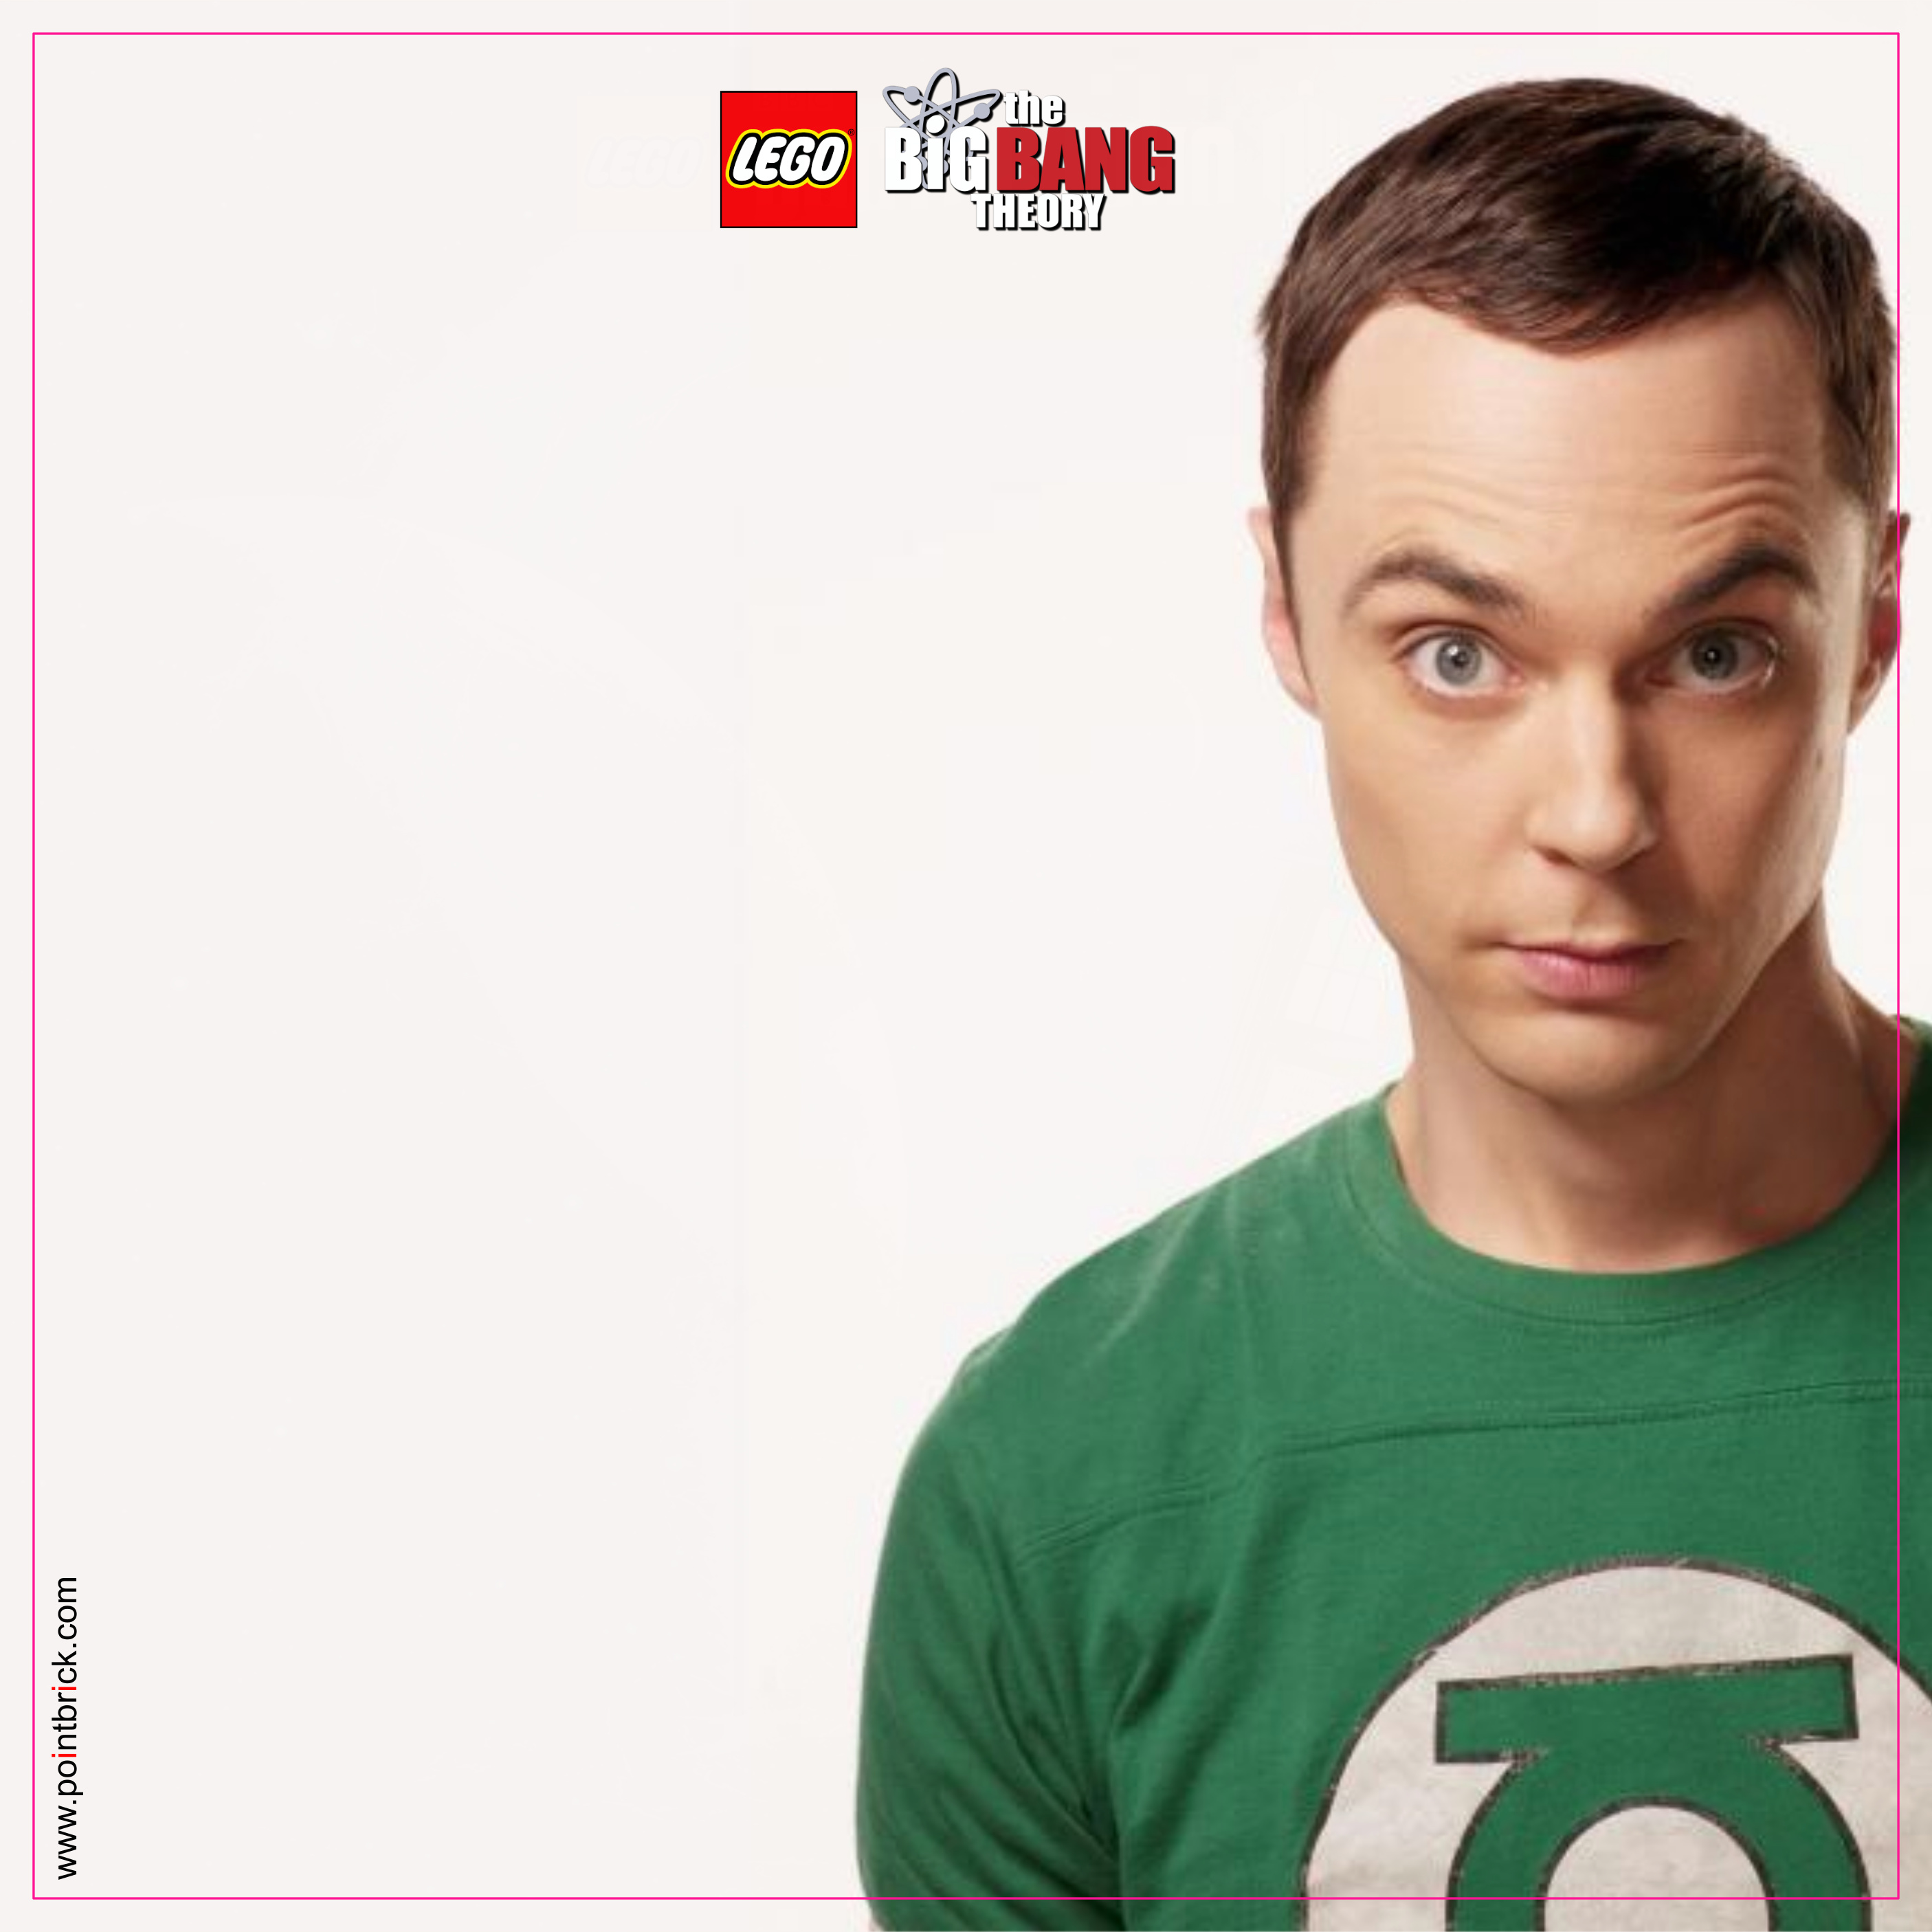 LEGO Minifigures Display Frame - Background 230mm The Big Bang Theory - Sheldon Plain - Clicca sull'immagine per scaricarla gratuitamente!